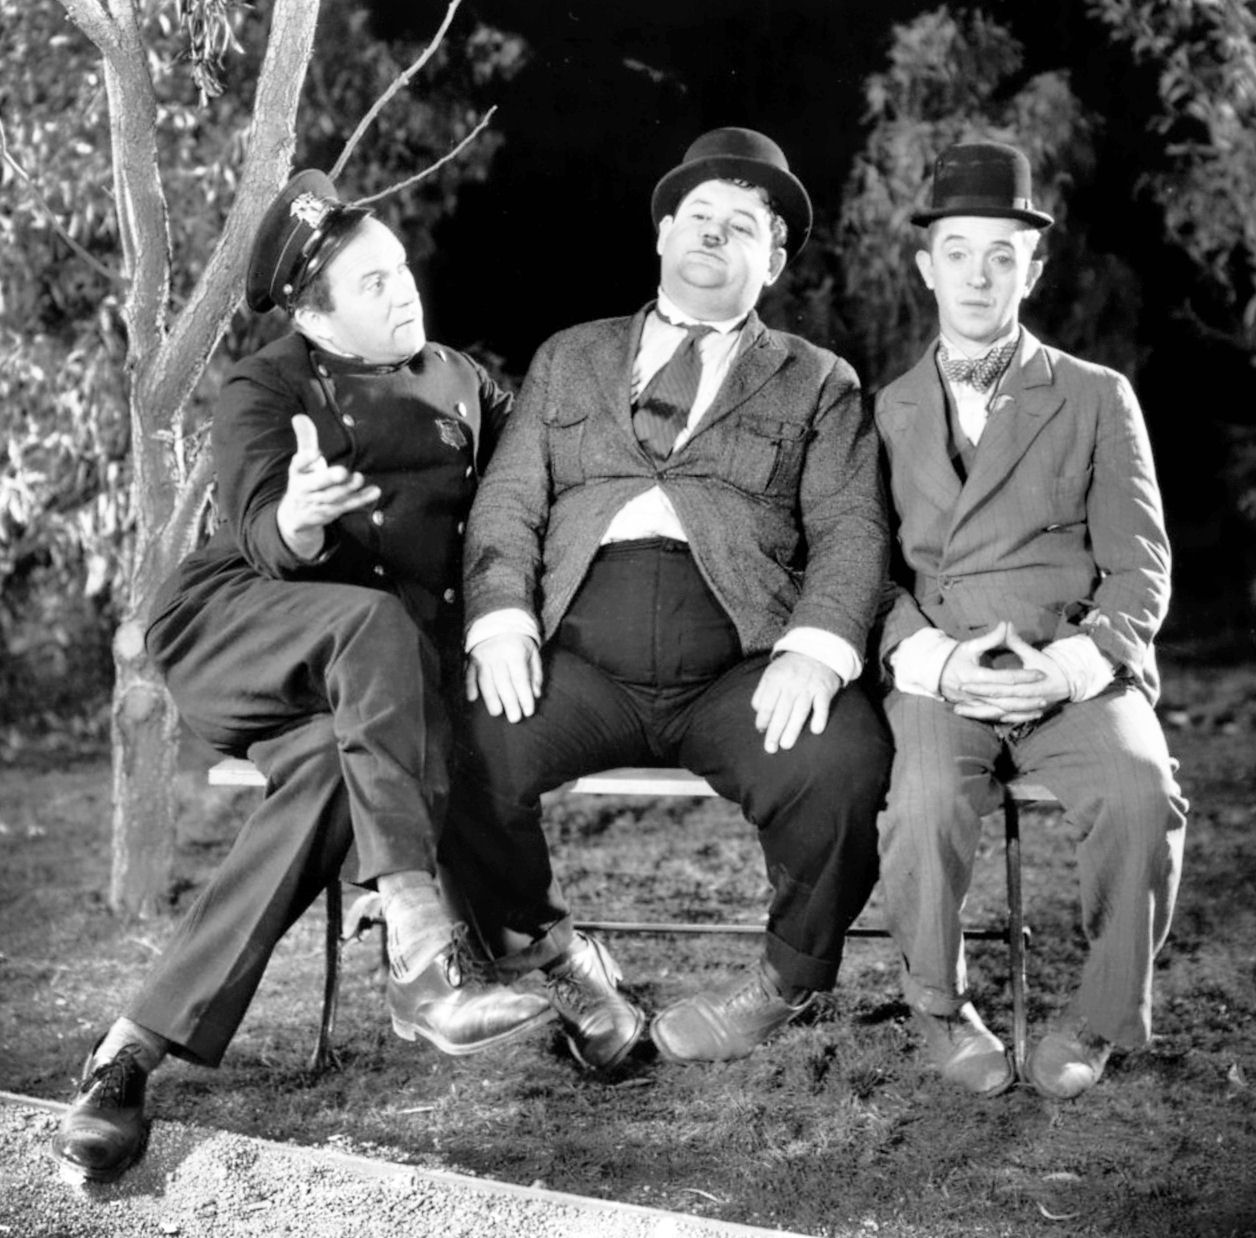 edgar kennedy stan ollie night owls 1930